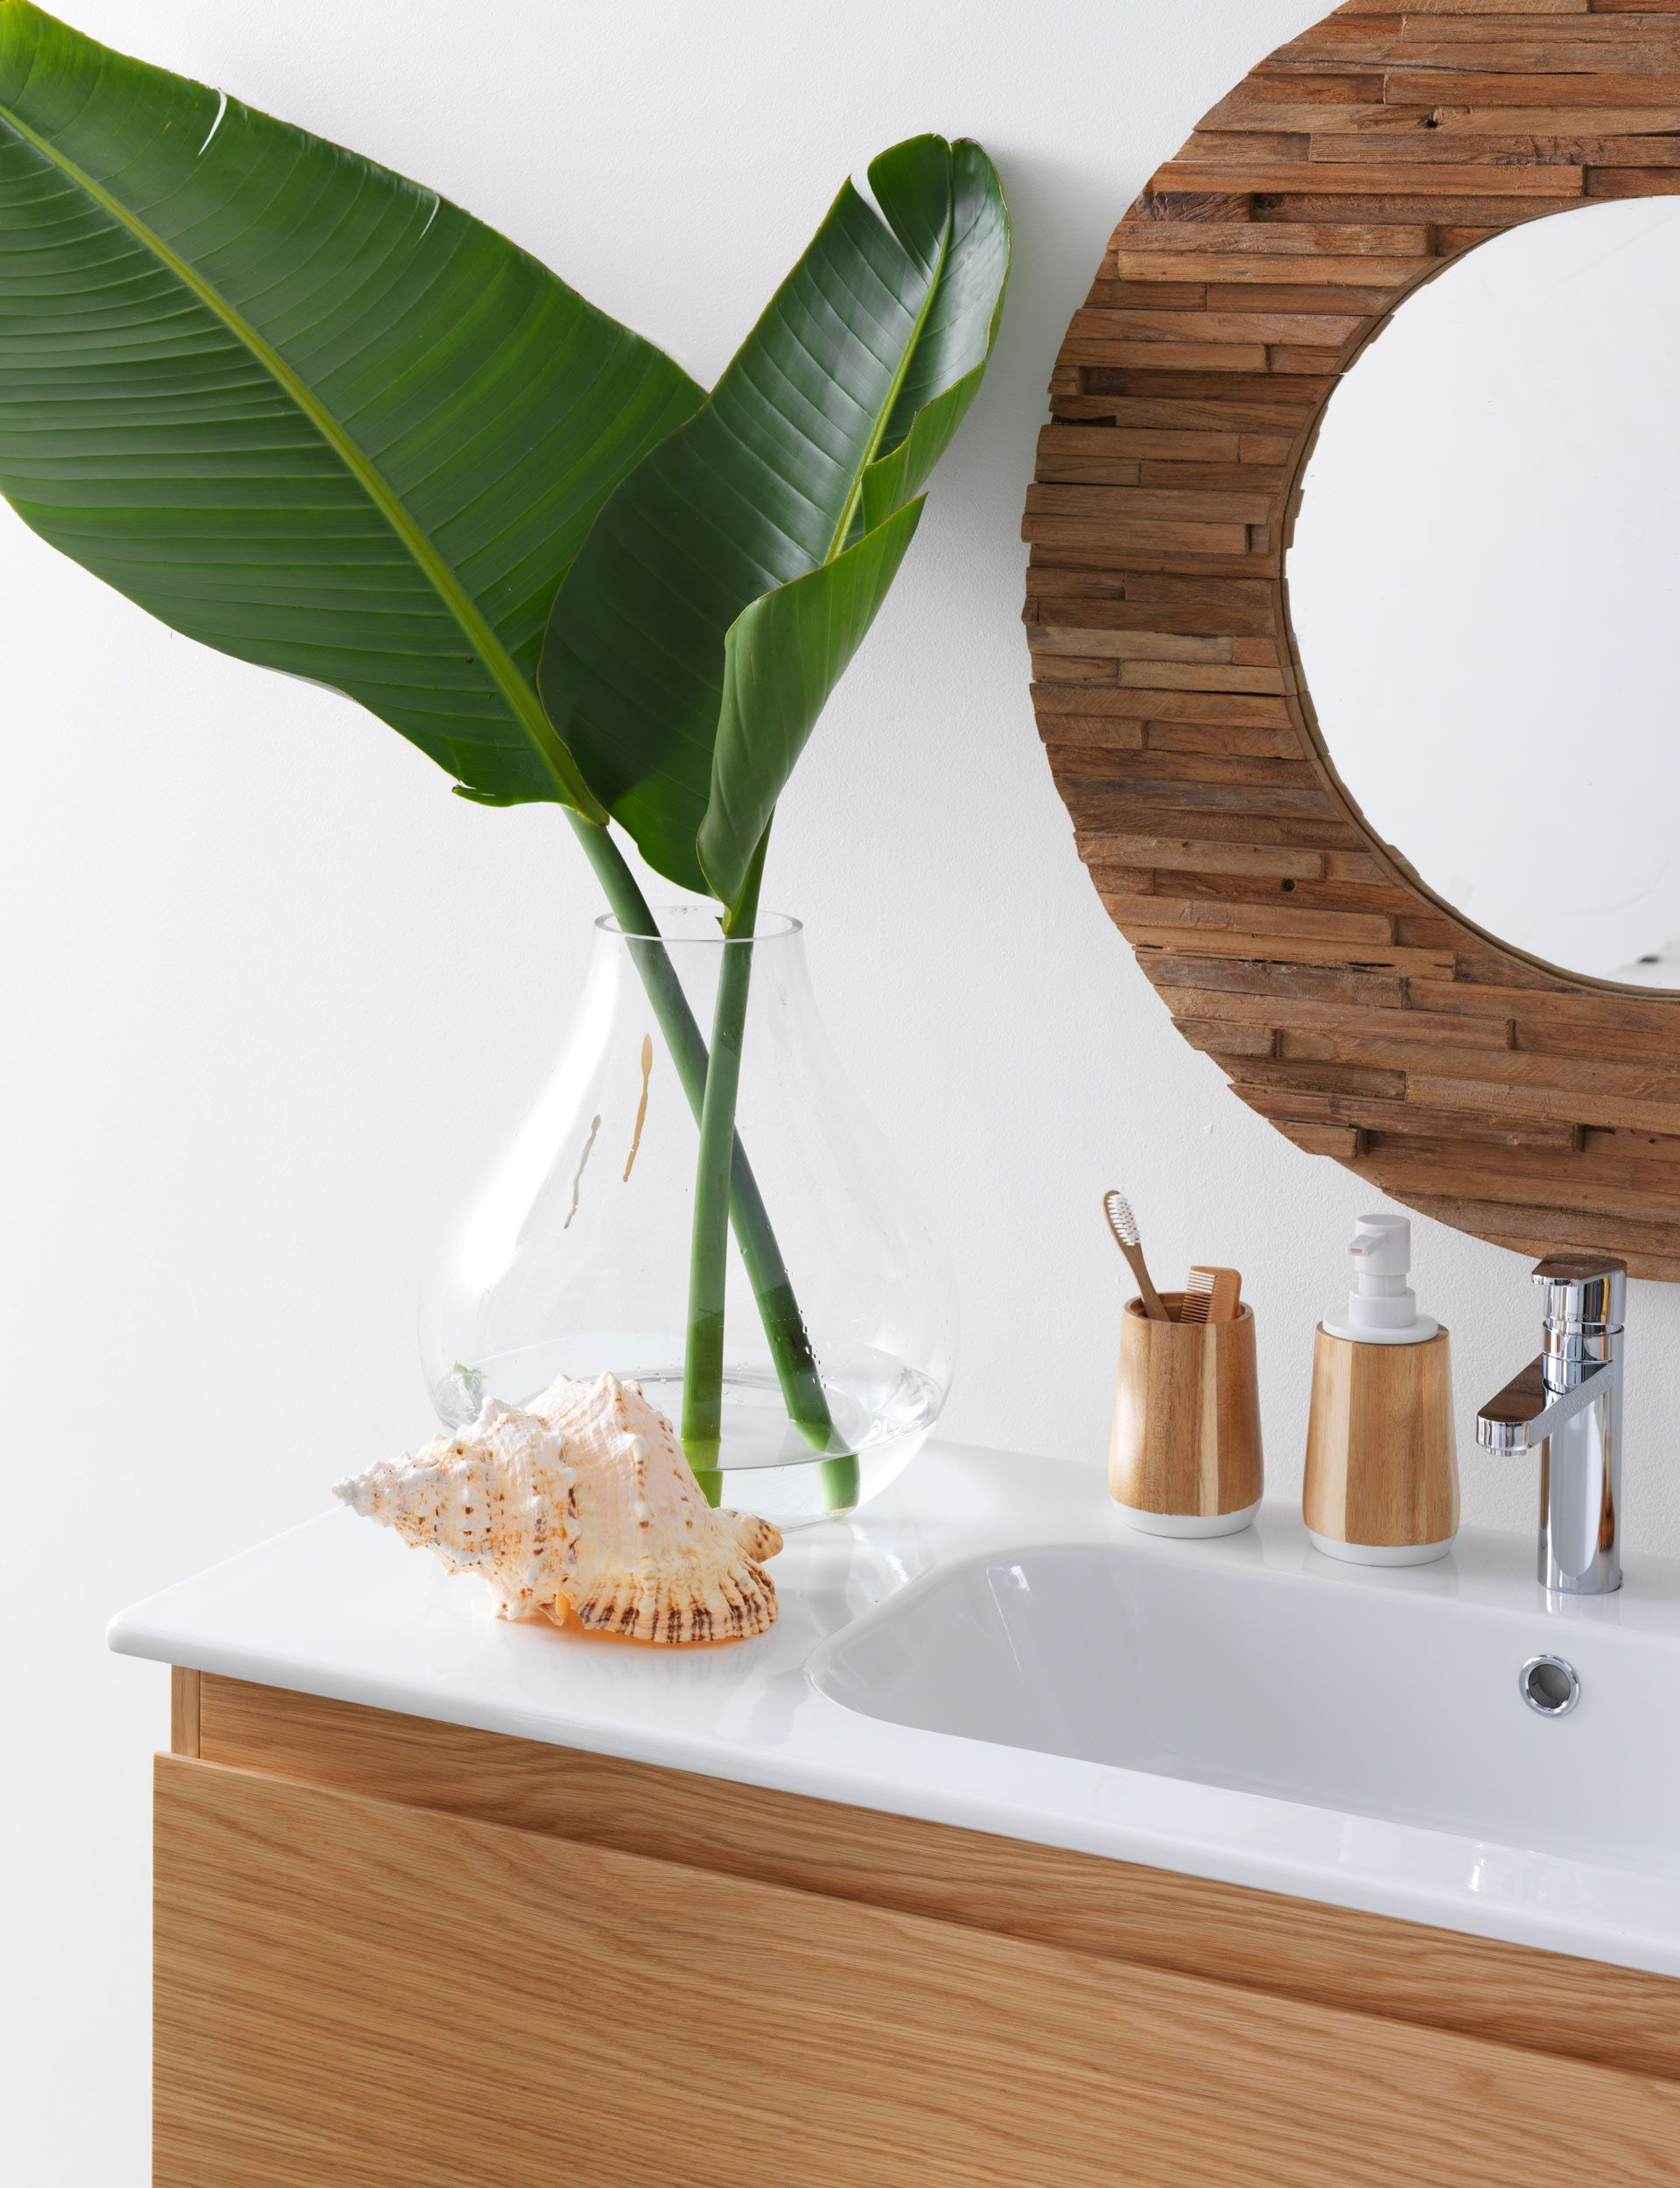 Simple ideas for your bathroom: Bali inspired style | Apartment ...